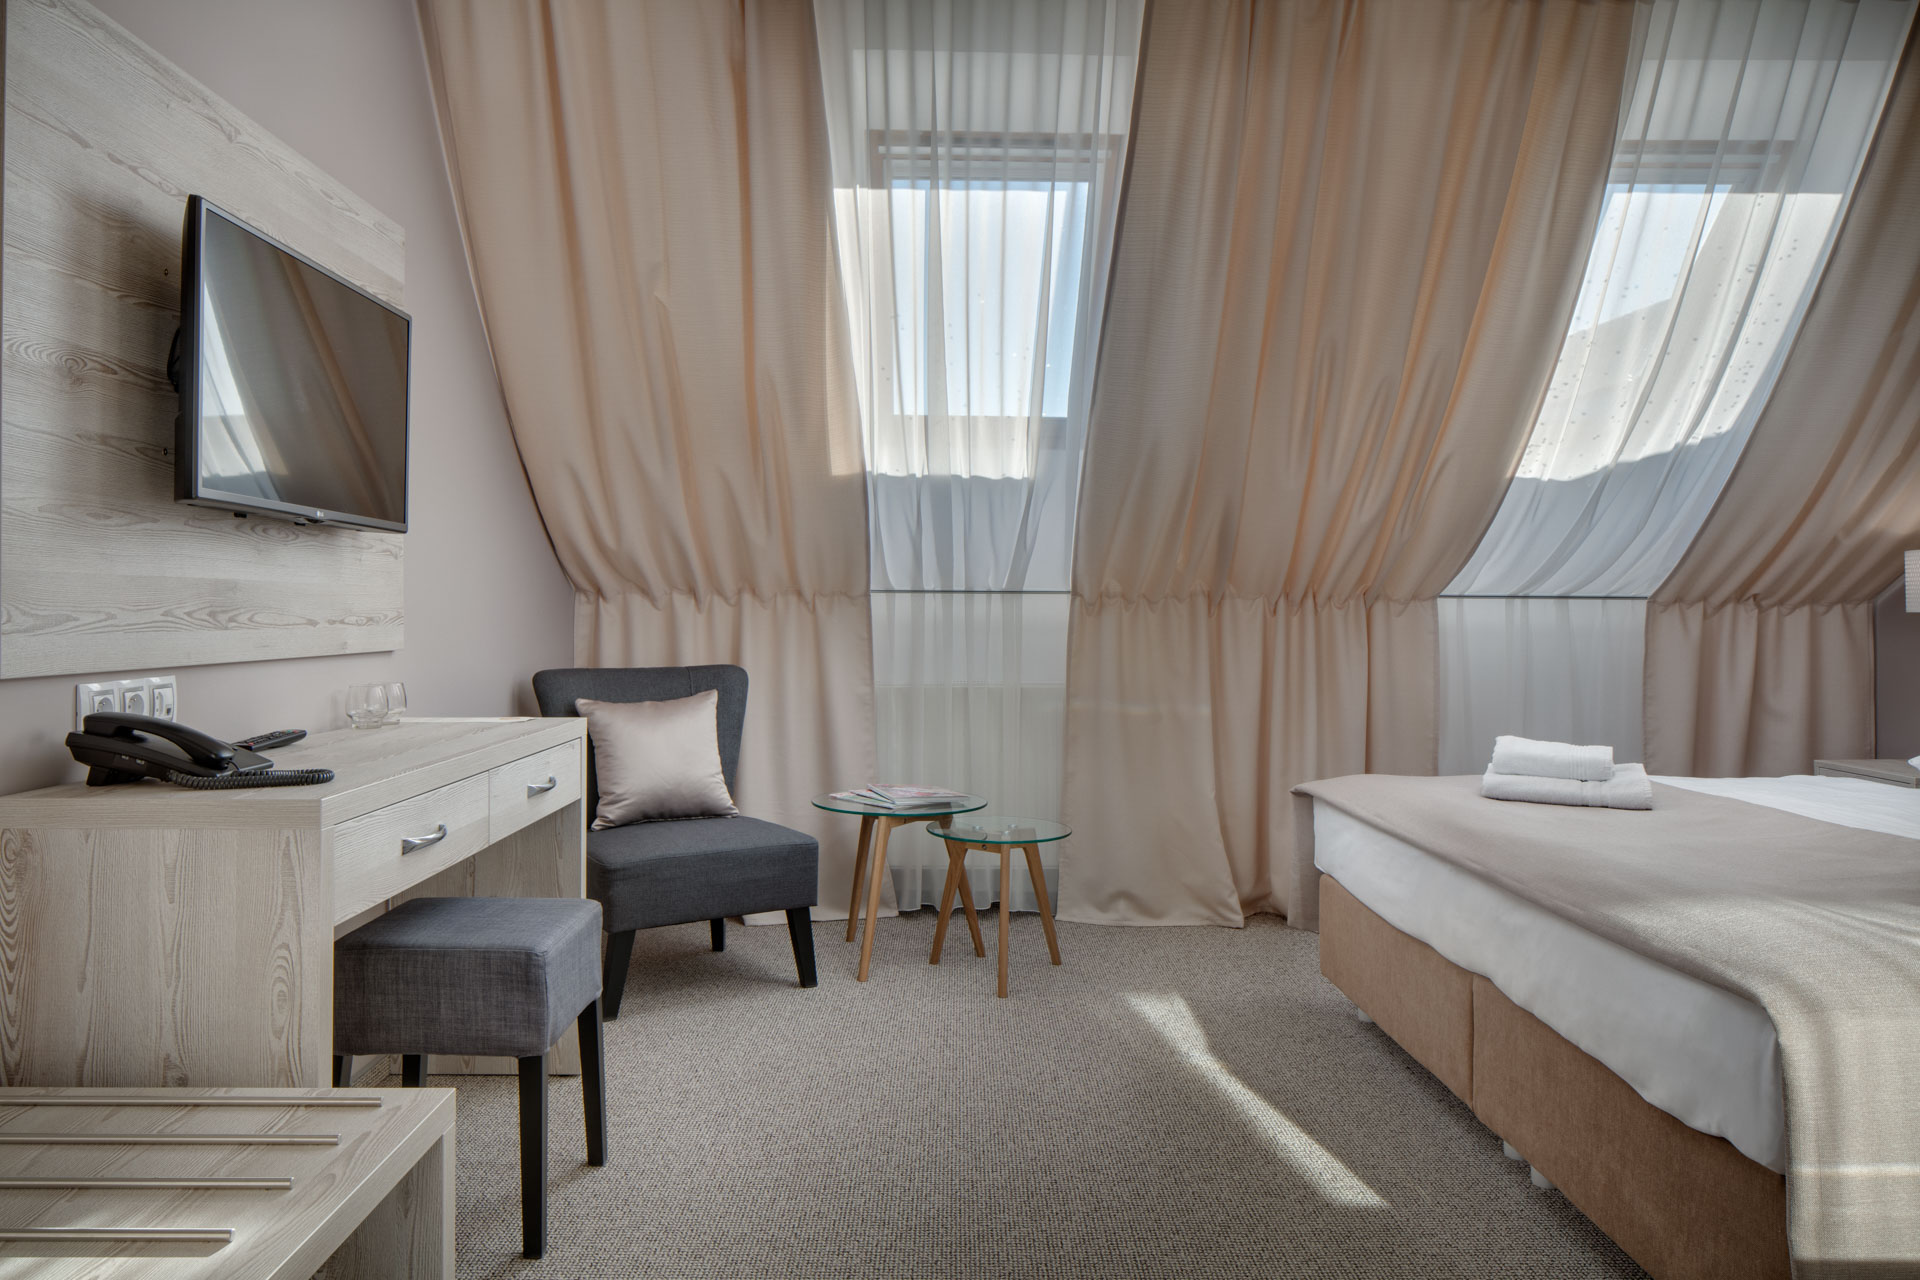 Dubble room at Hotel Florenc